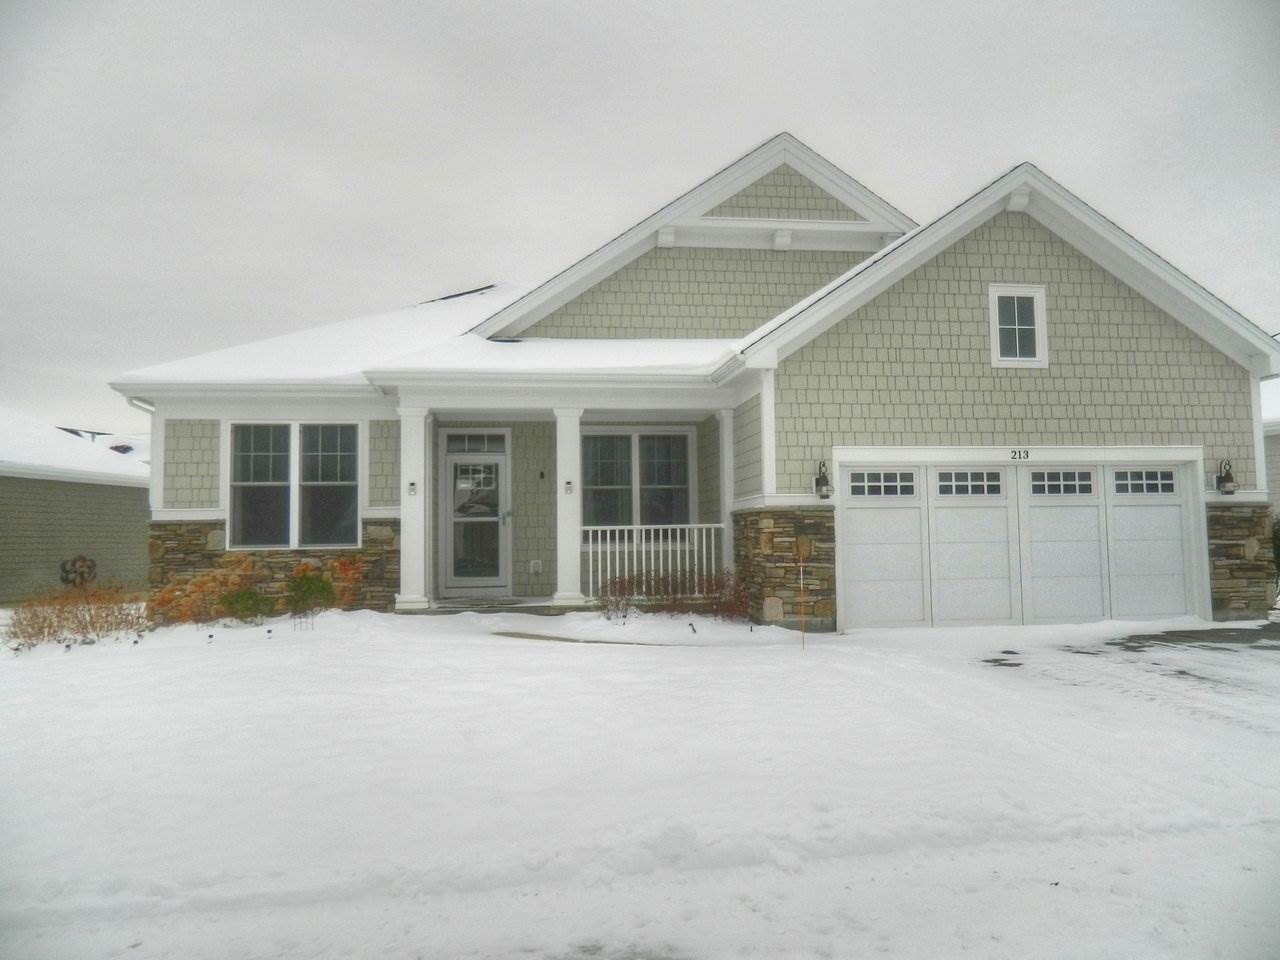 213  Dunmore Williston, VT 05495